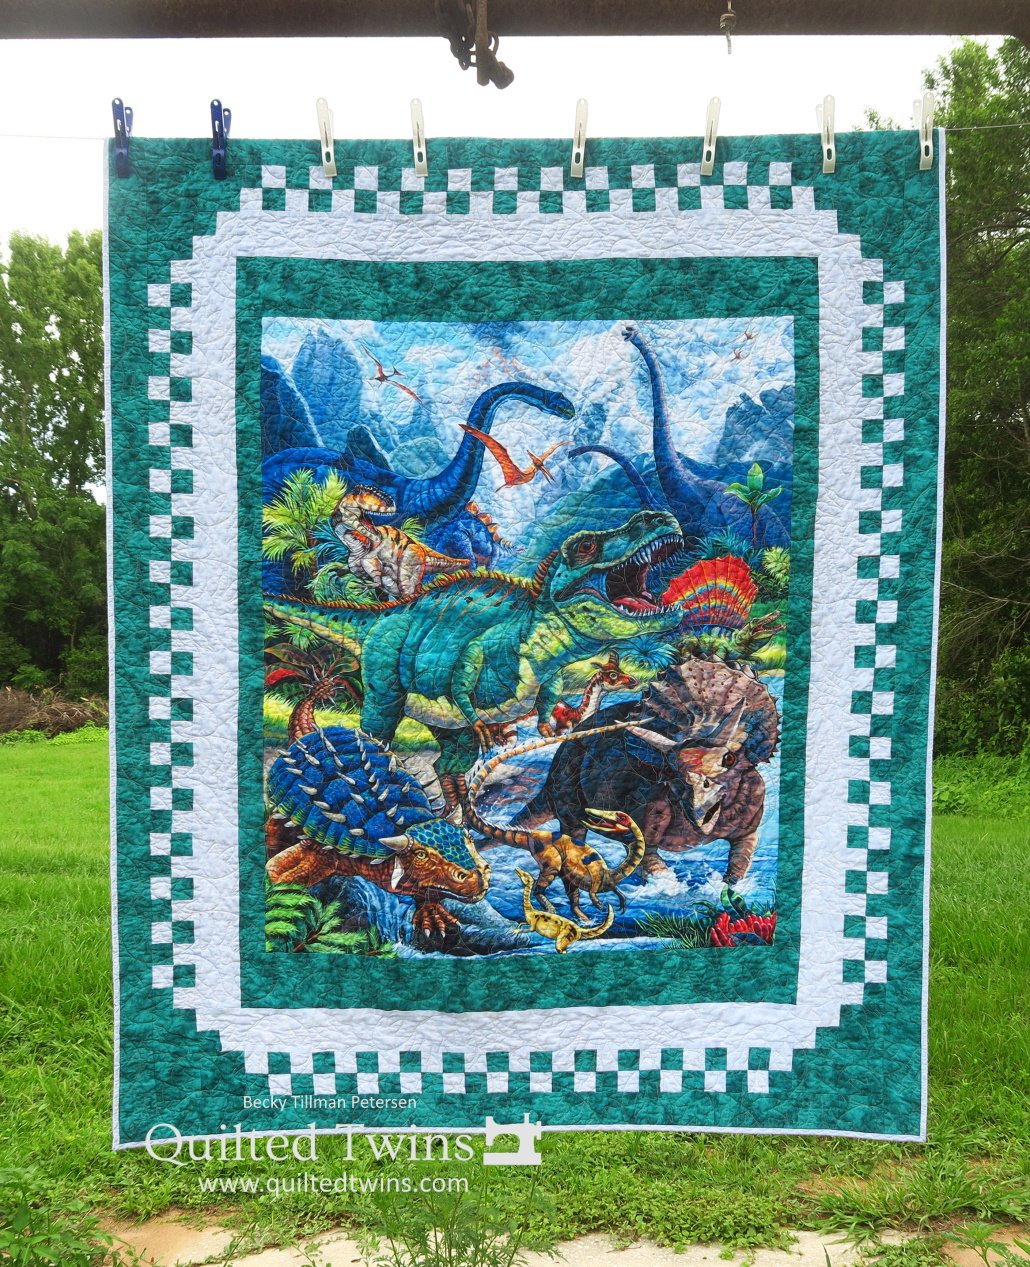 Checkered Fantasy: Dinotopia Lap Quilt Kit in TEAL - Panel, Pattern, Fabric for Top and Binding